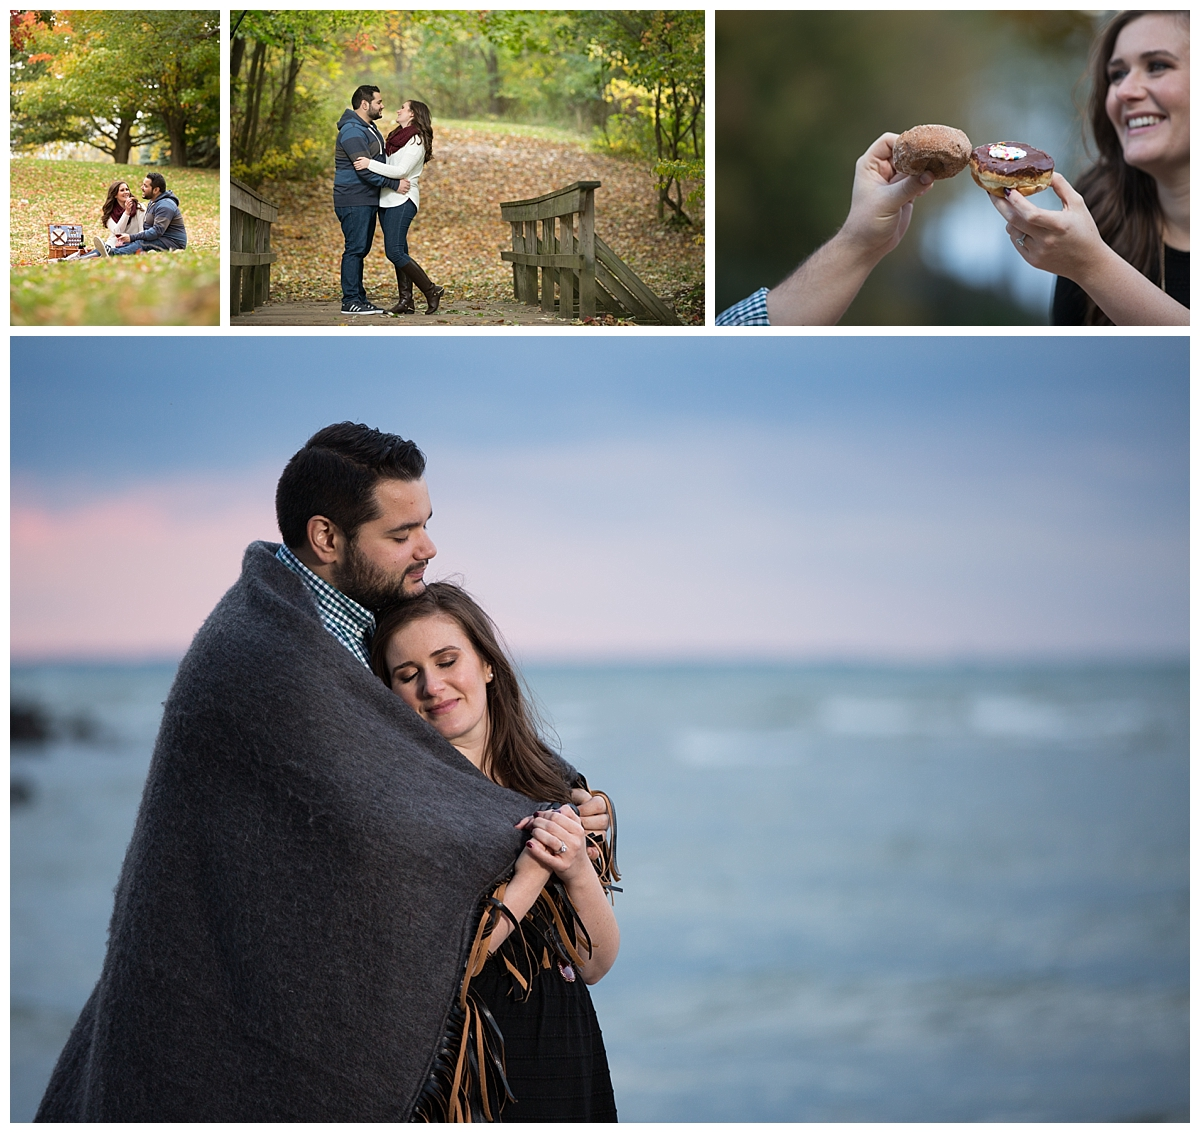 Webster Park engagement session, picnic engagement, doughnut wedding, Lake wedding